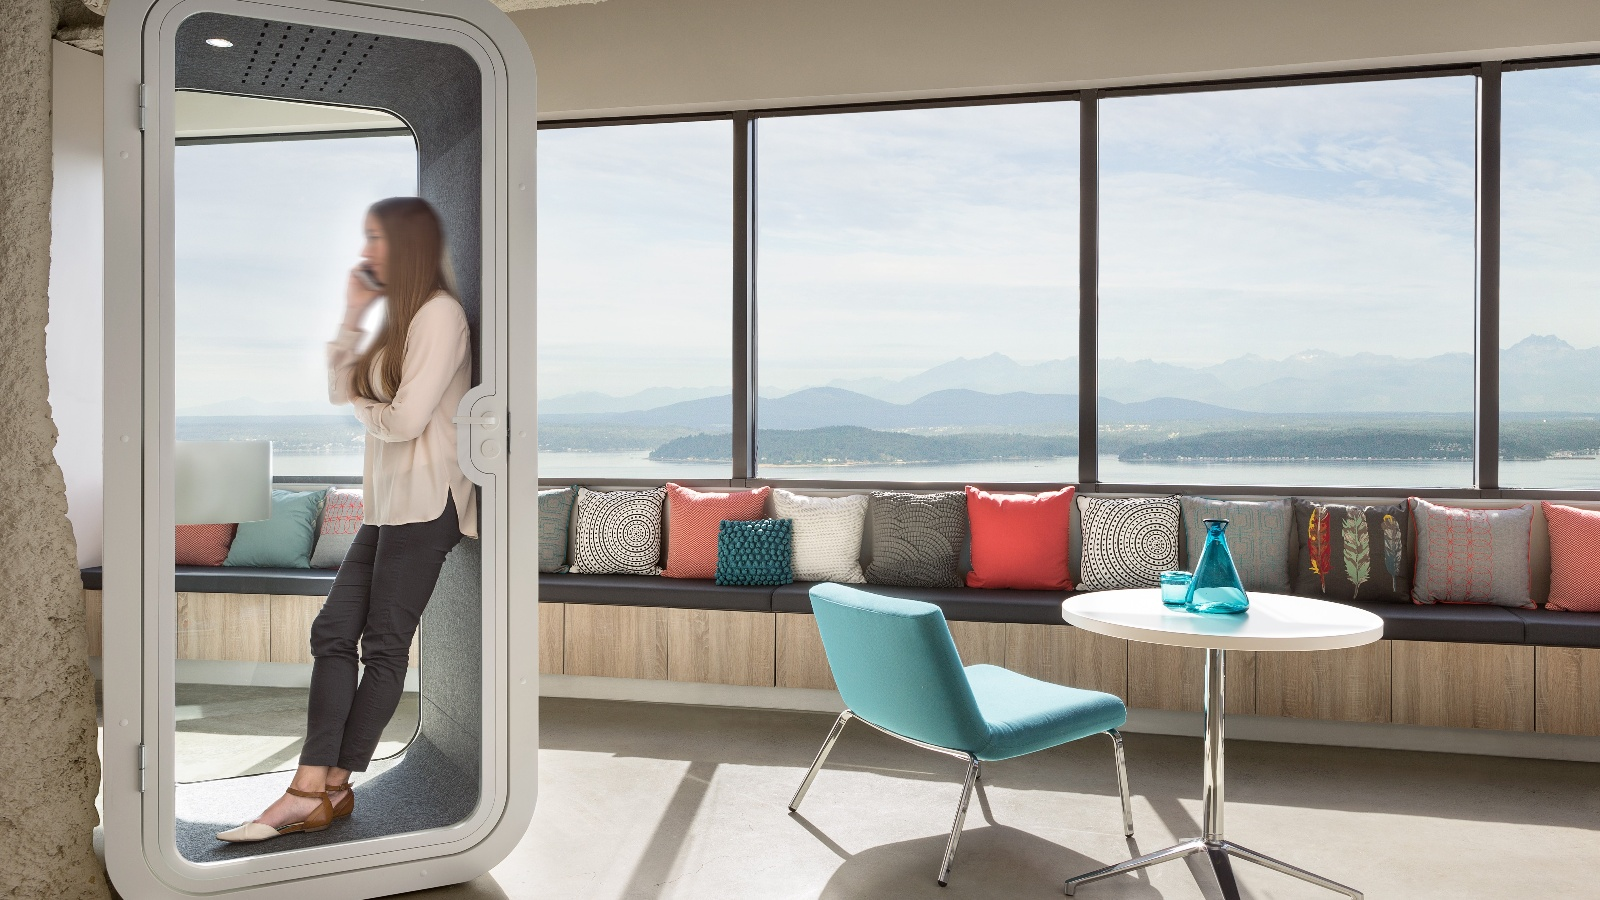 A compact phone booth in an activity-based office provides a private space for making important phone and video calls.